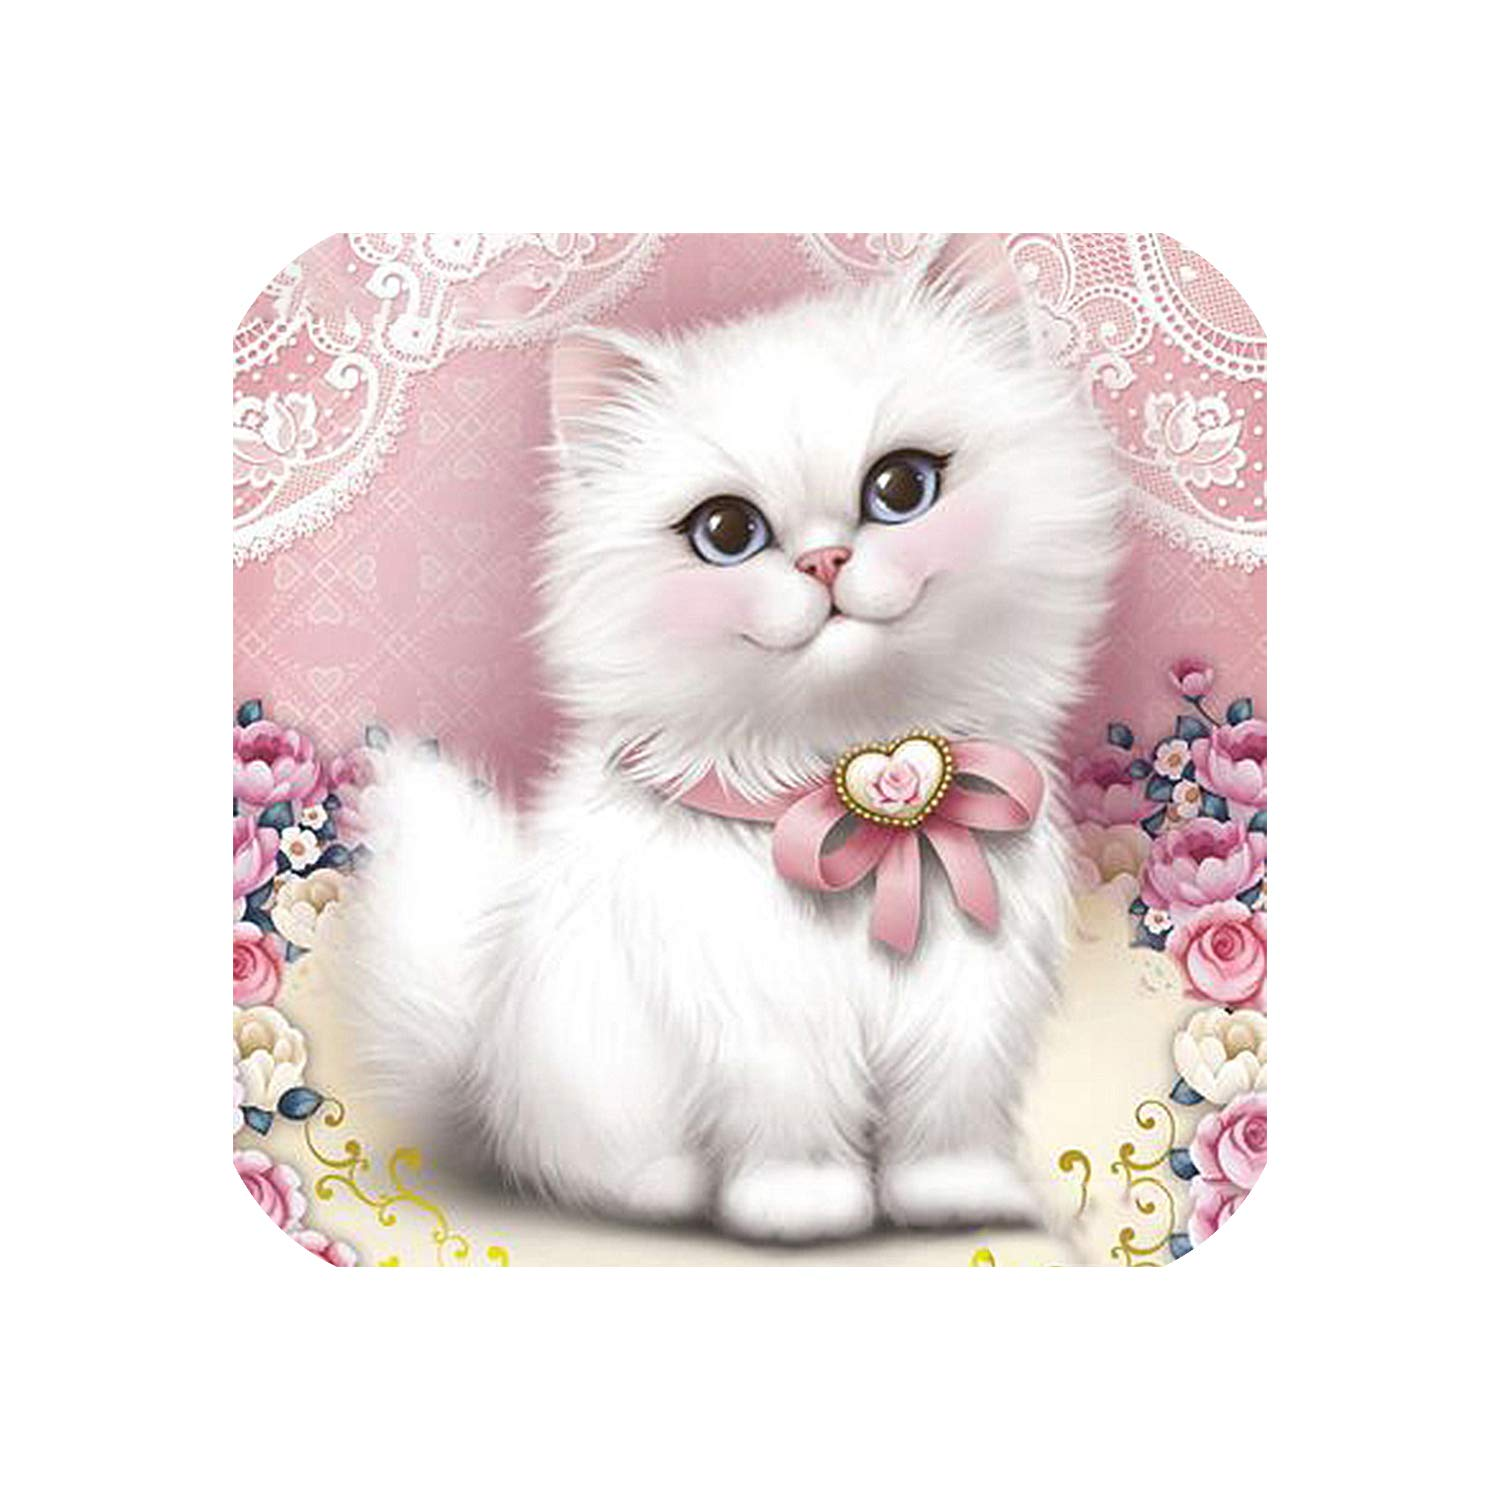 Wild-lOVE Full dispaint/Square/Round Drill 5D DIY Diamond Painting Animal cat Embroidery Cross Stitch 3D Home Decoration a12848,Square Drill 120x120